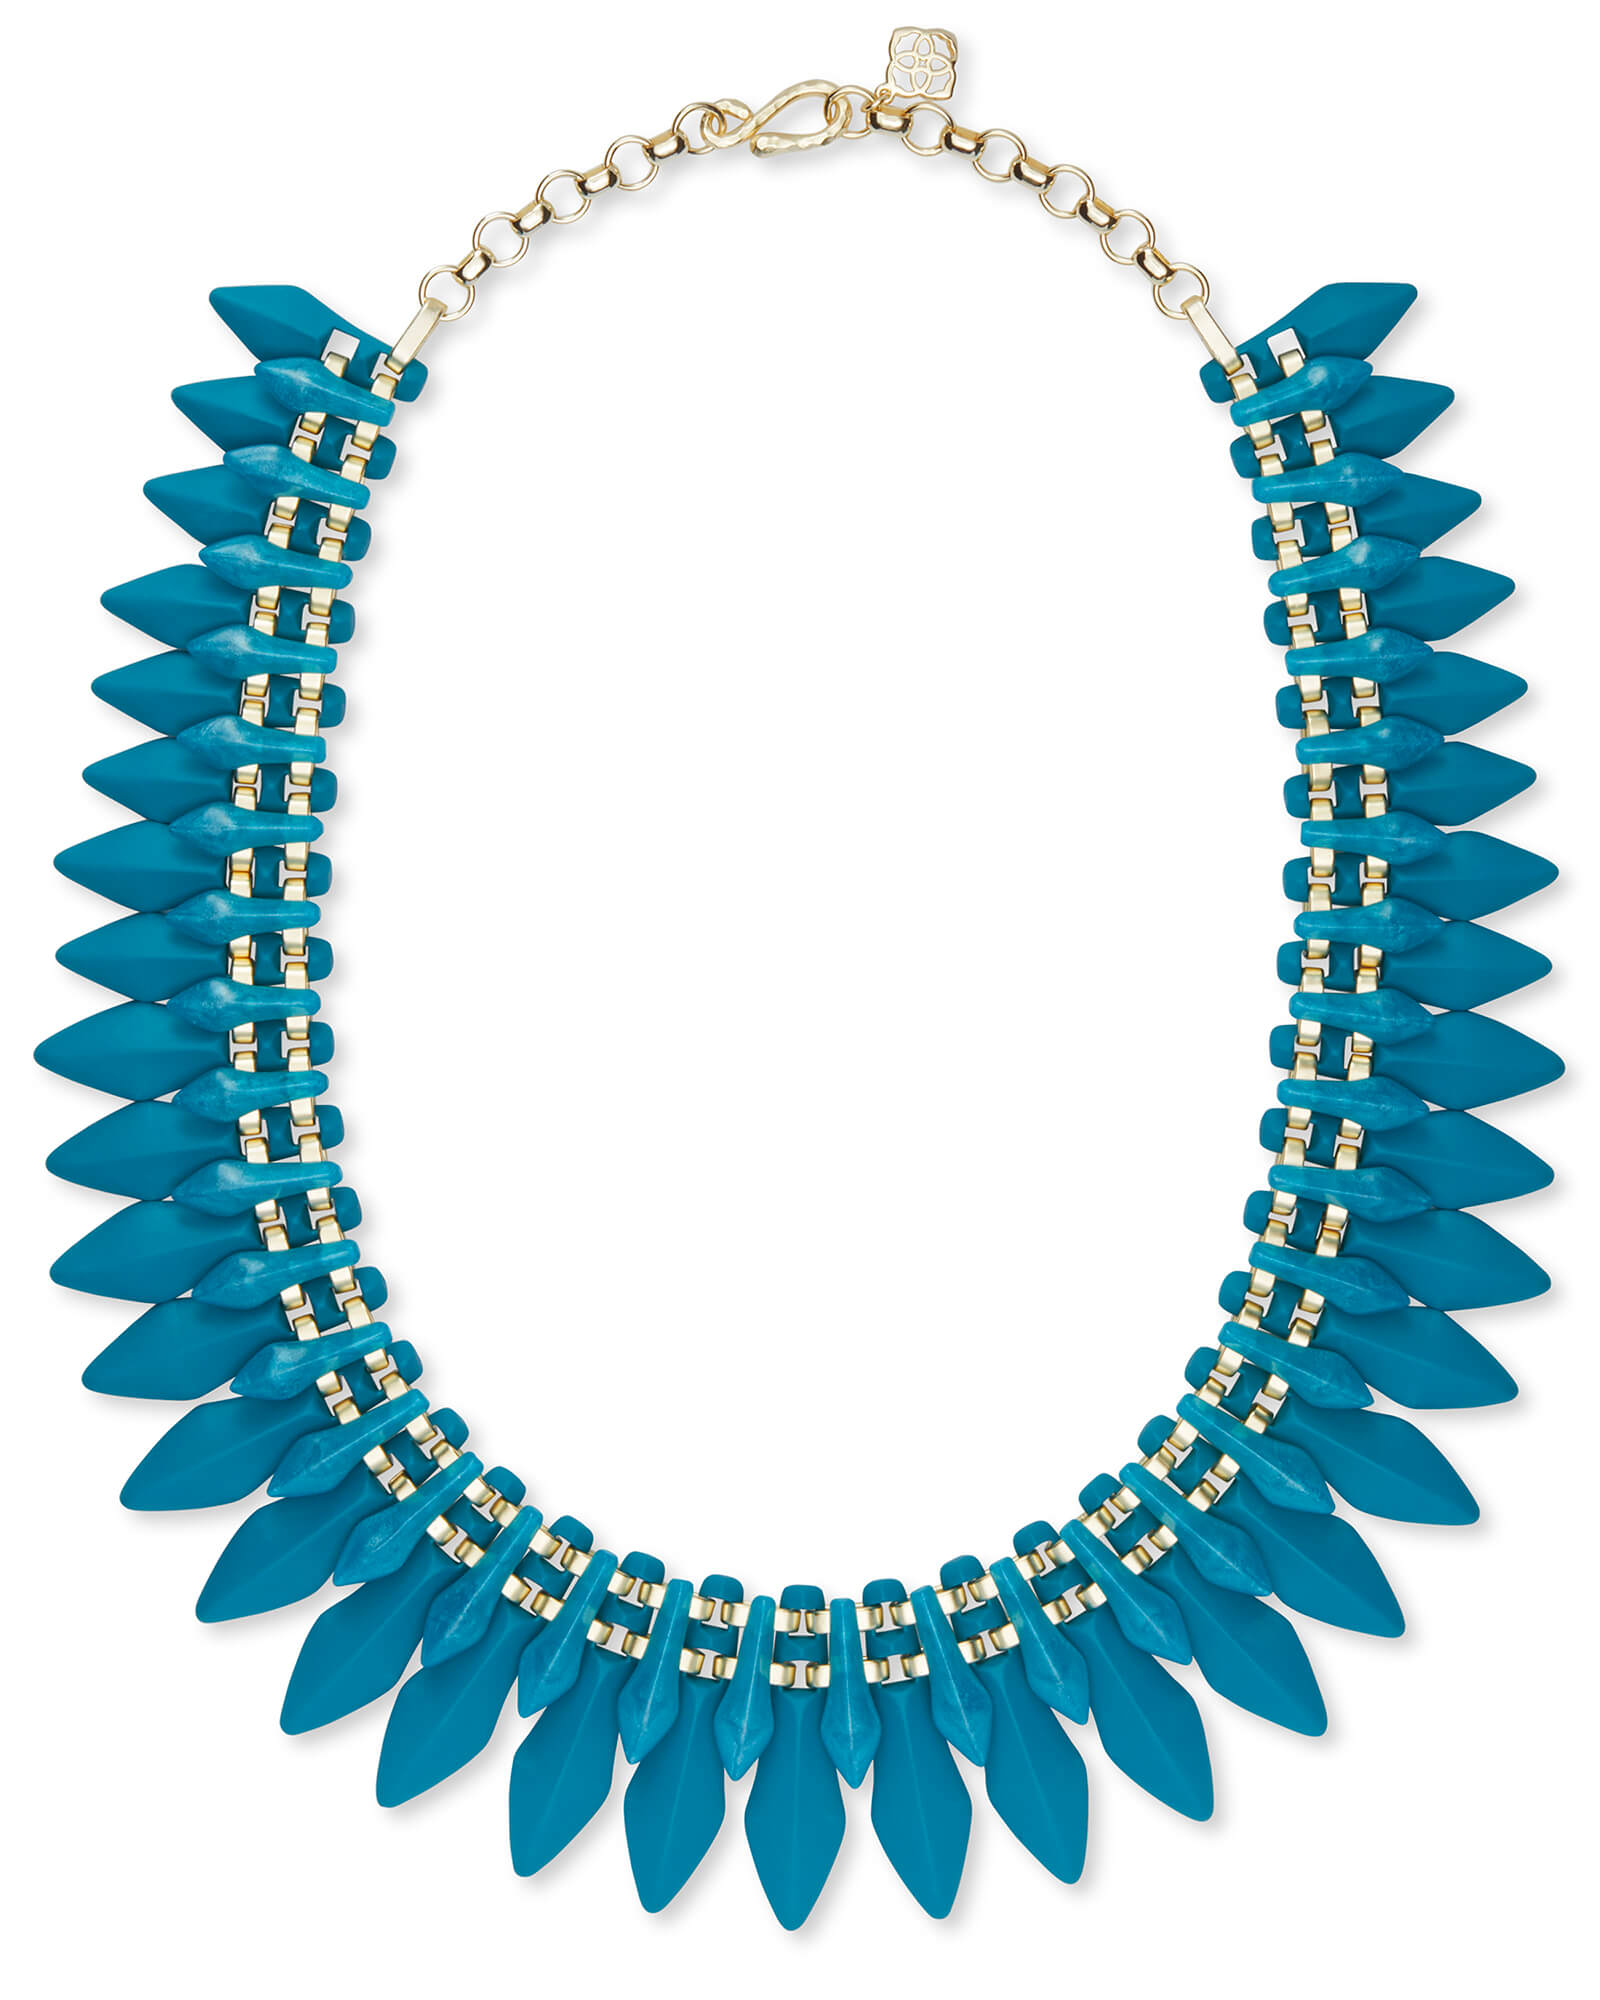 Lazarus Gold Statement Necklace in Teal Marbled Acrylic